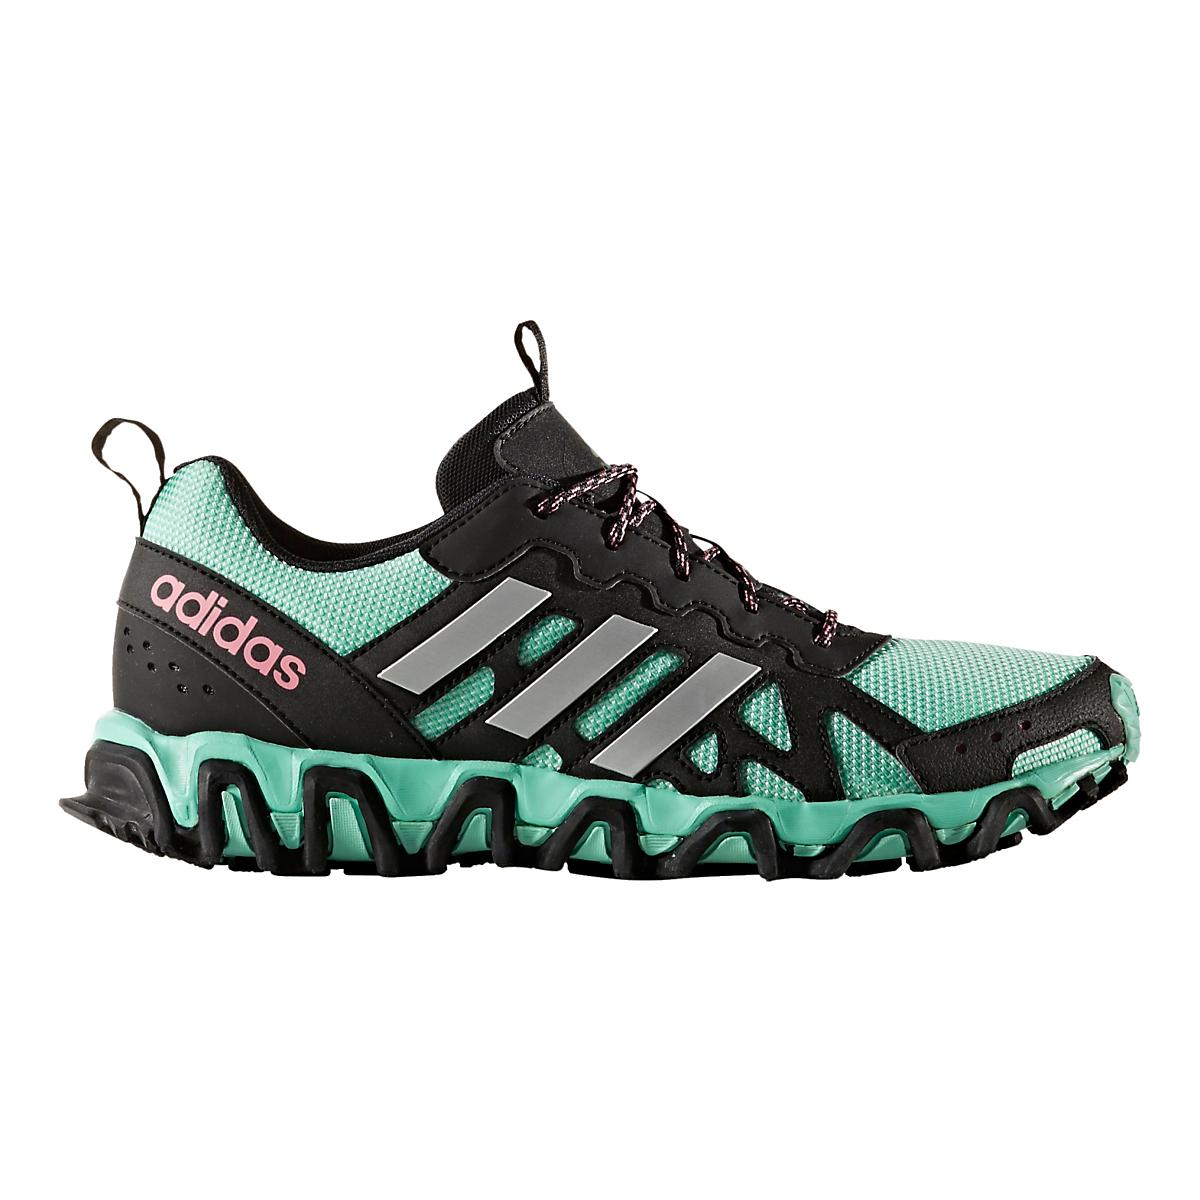 size 40 d5551 3ff26 Womens adidas Incision Trail Running Shoe at Road Runner Spo